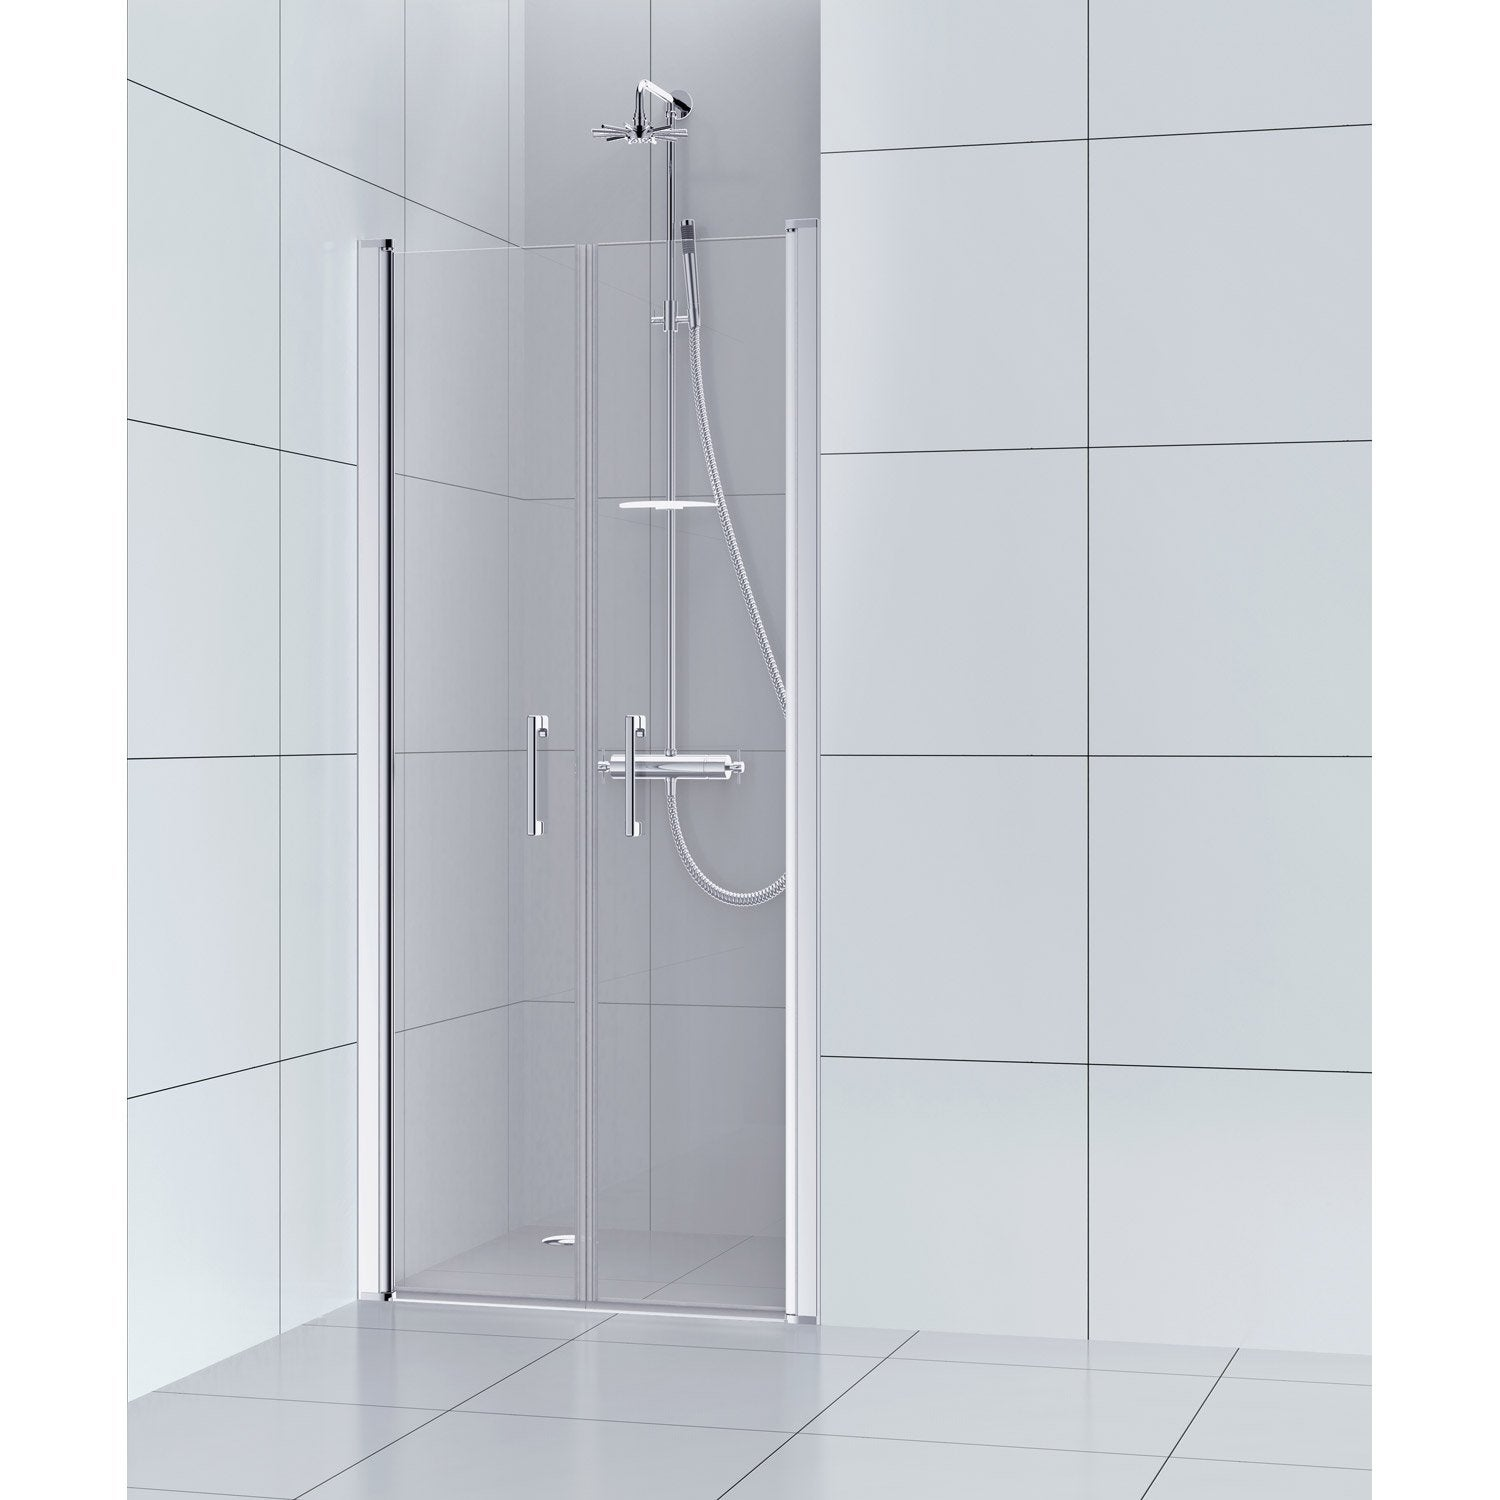 Porte de douche battante 70 cm transparent remix leroy for Porte de douche 70 cm